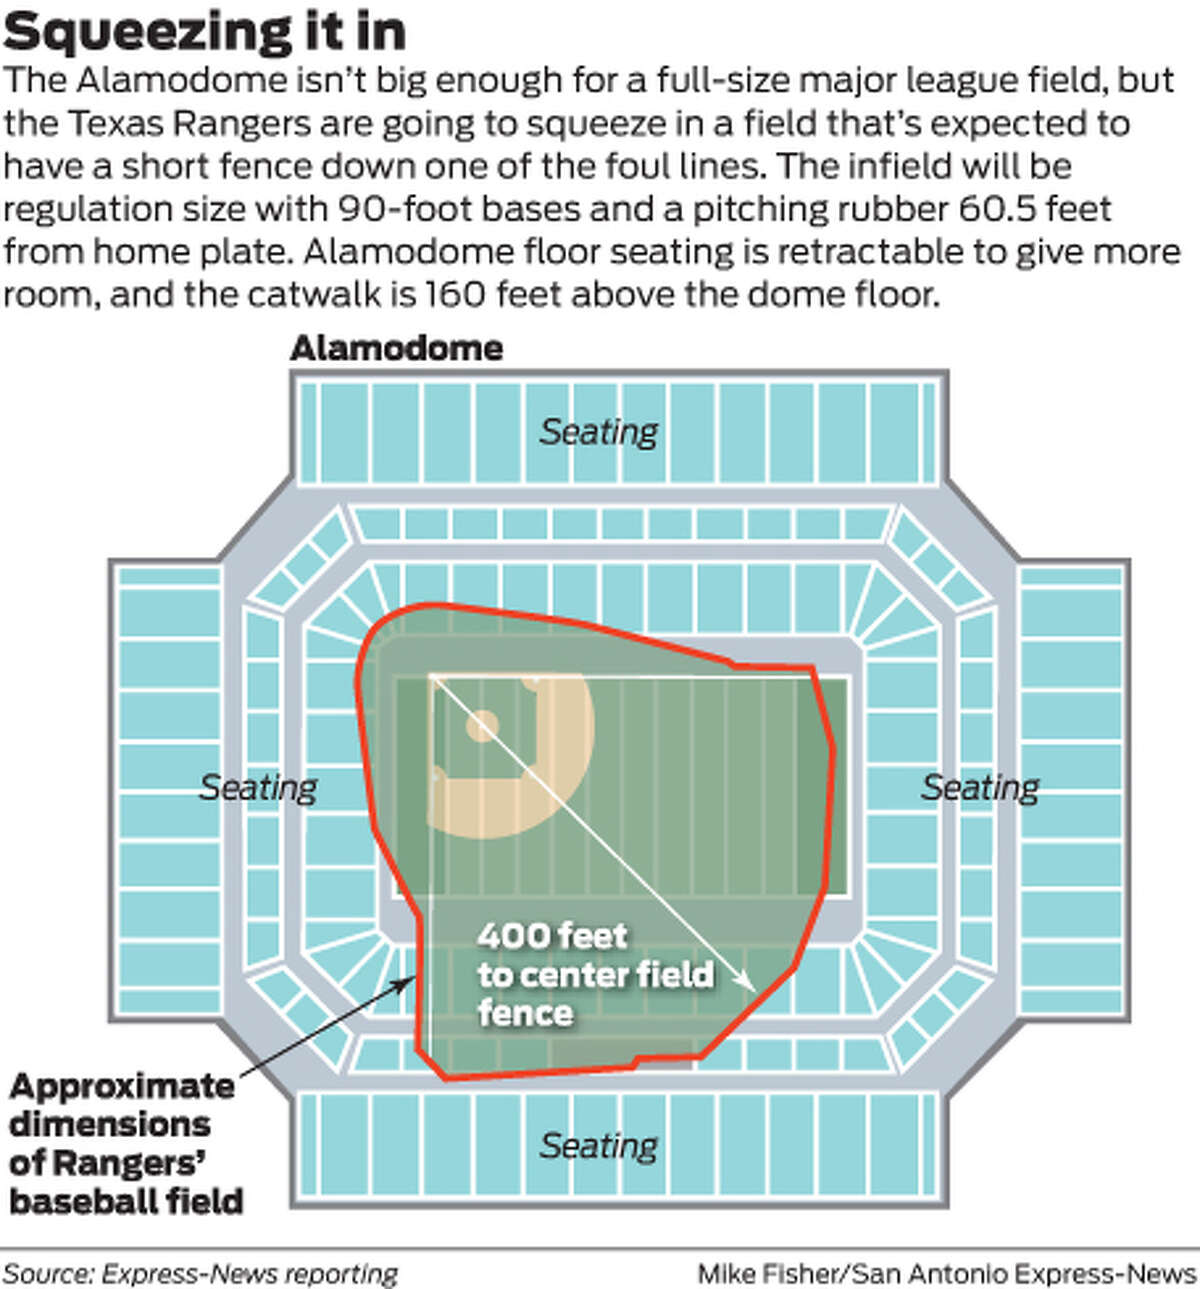 The Alamodome isn't big enough for a full-size major league field, but the Texas Rangers are going to squeeze in a field that's expected to have a short fence down one of the foul lines. The infield will be regulation size with 90-foot bases and a pitching rubber 60.5 feet from home plate. Alamodome floor seating is retractable to give more room, and the catwalk is 160 feet above the dome floor.